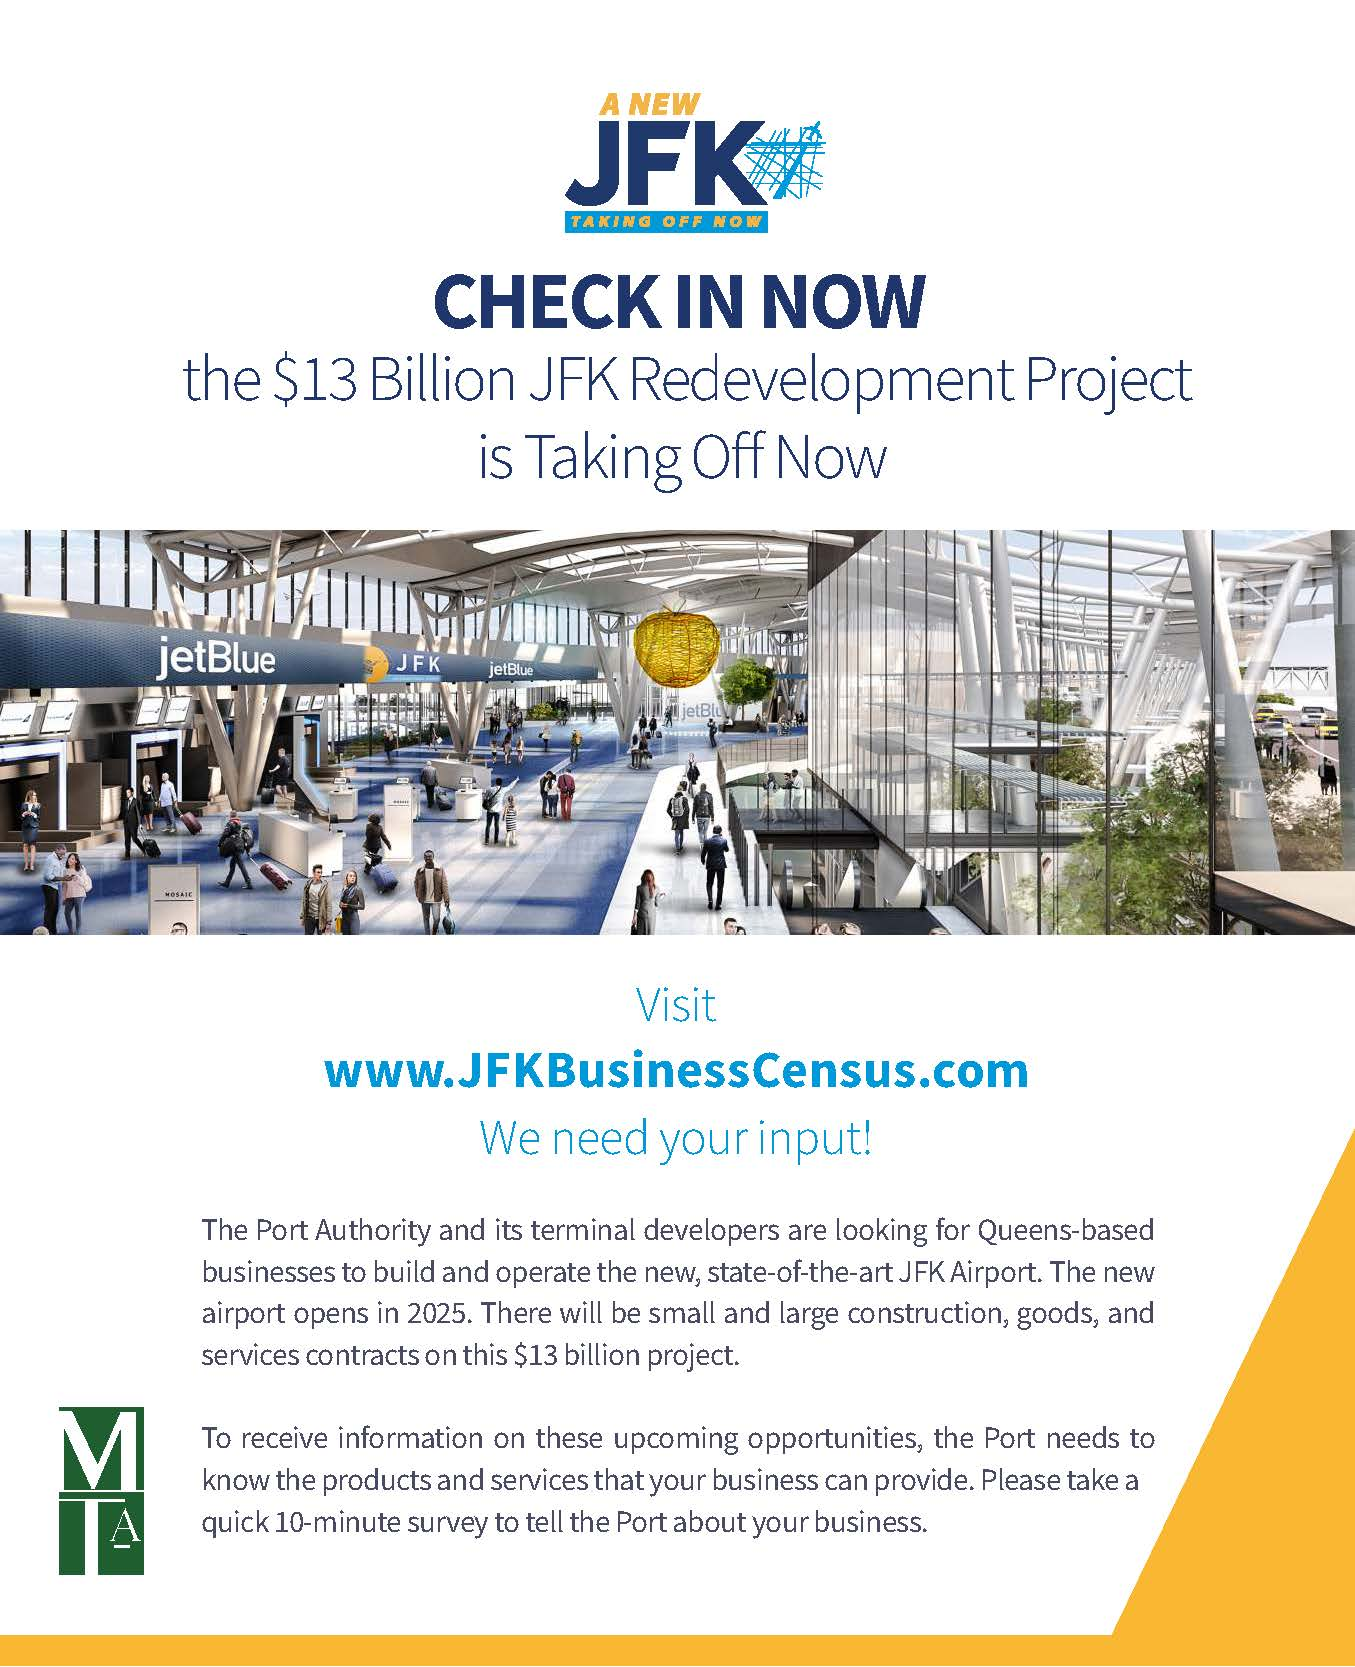 flyer-JFK-MTA-PRINT_compressed_Page_1-1.jpg